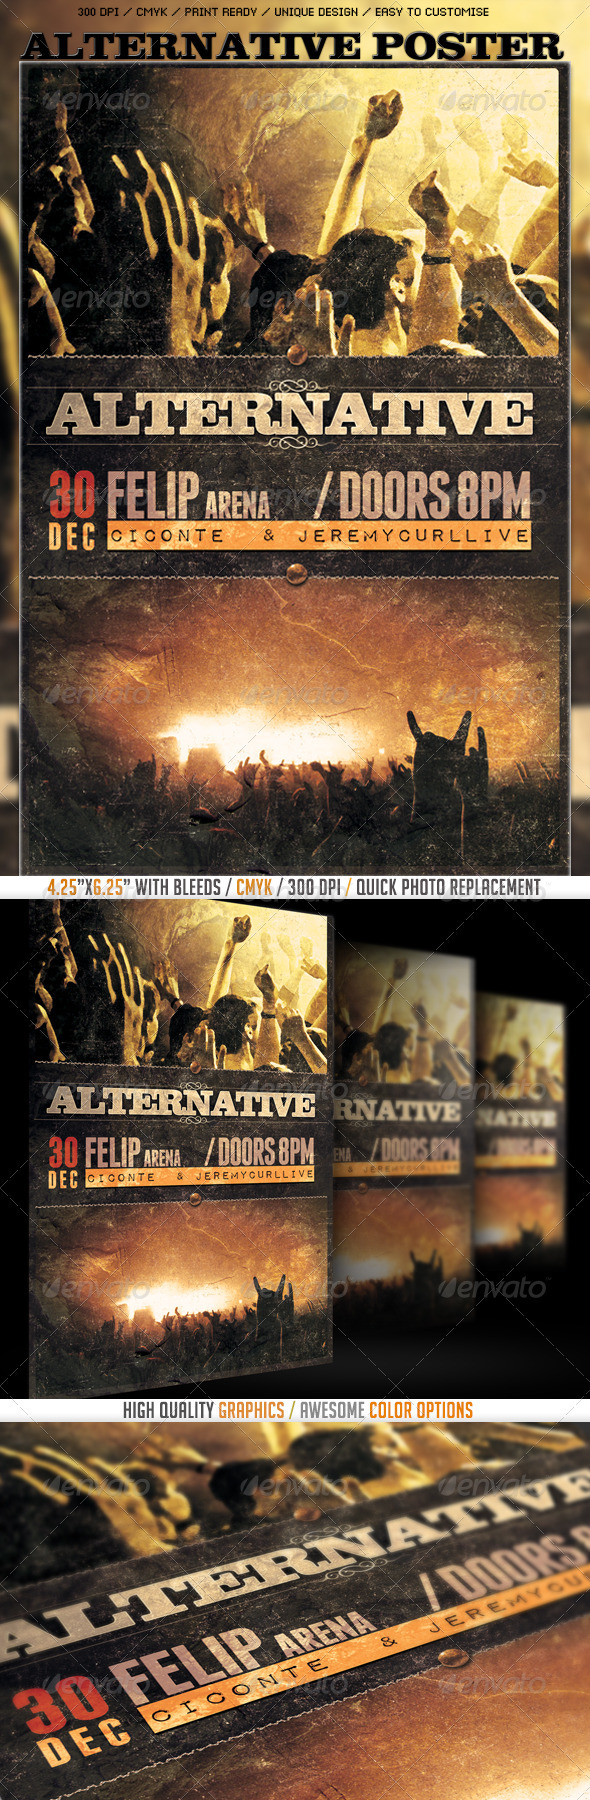 Alternative Poster/Flyer Template - Events Flyers